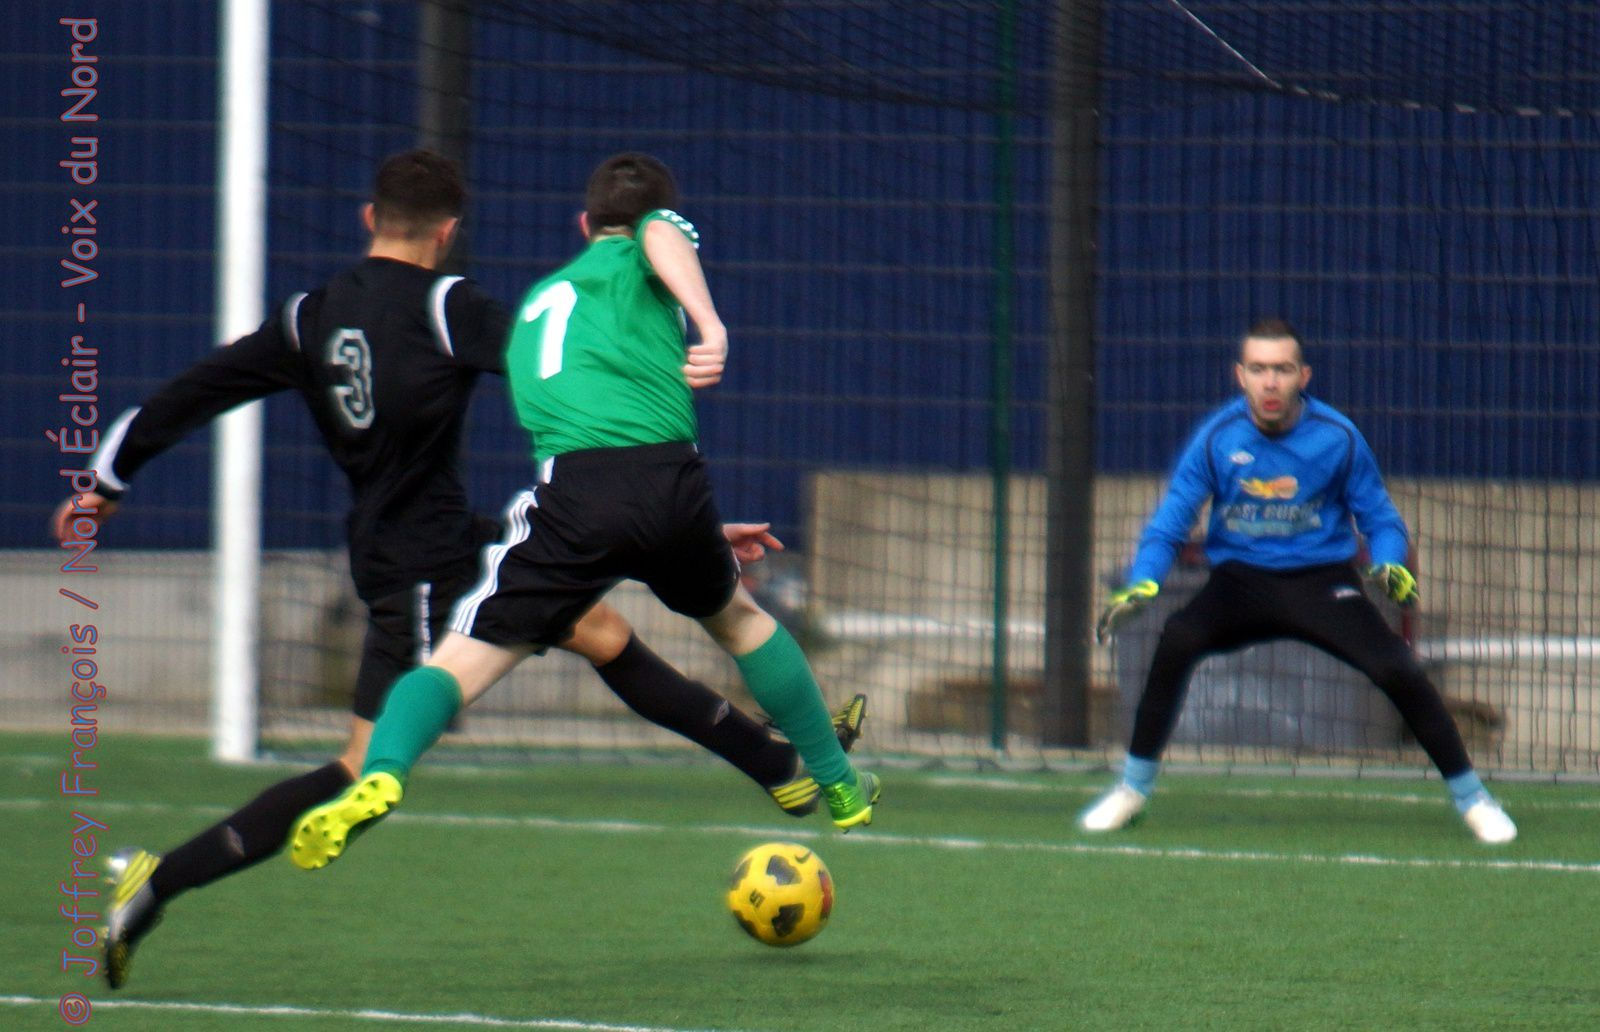 02/03/14  CDL Omnisports-Arleux et PL Barbe d'or-Illies